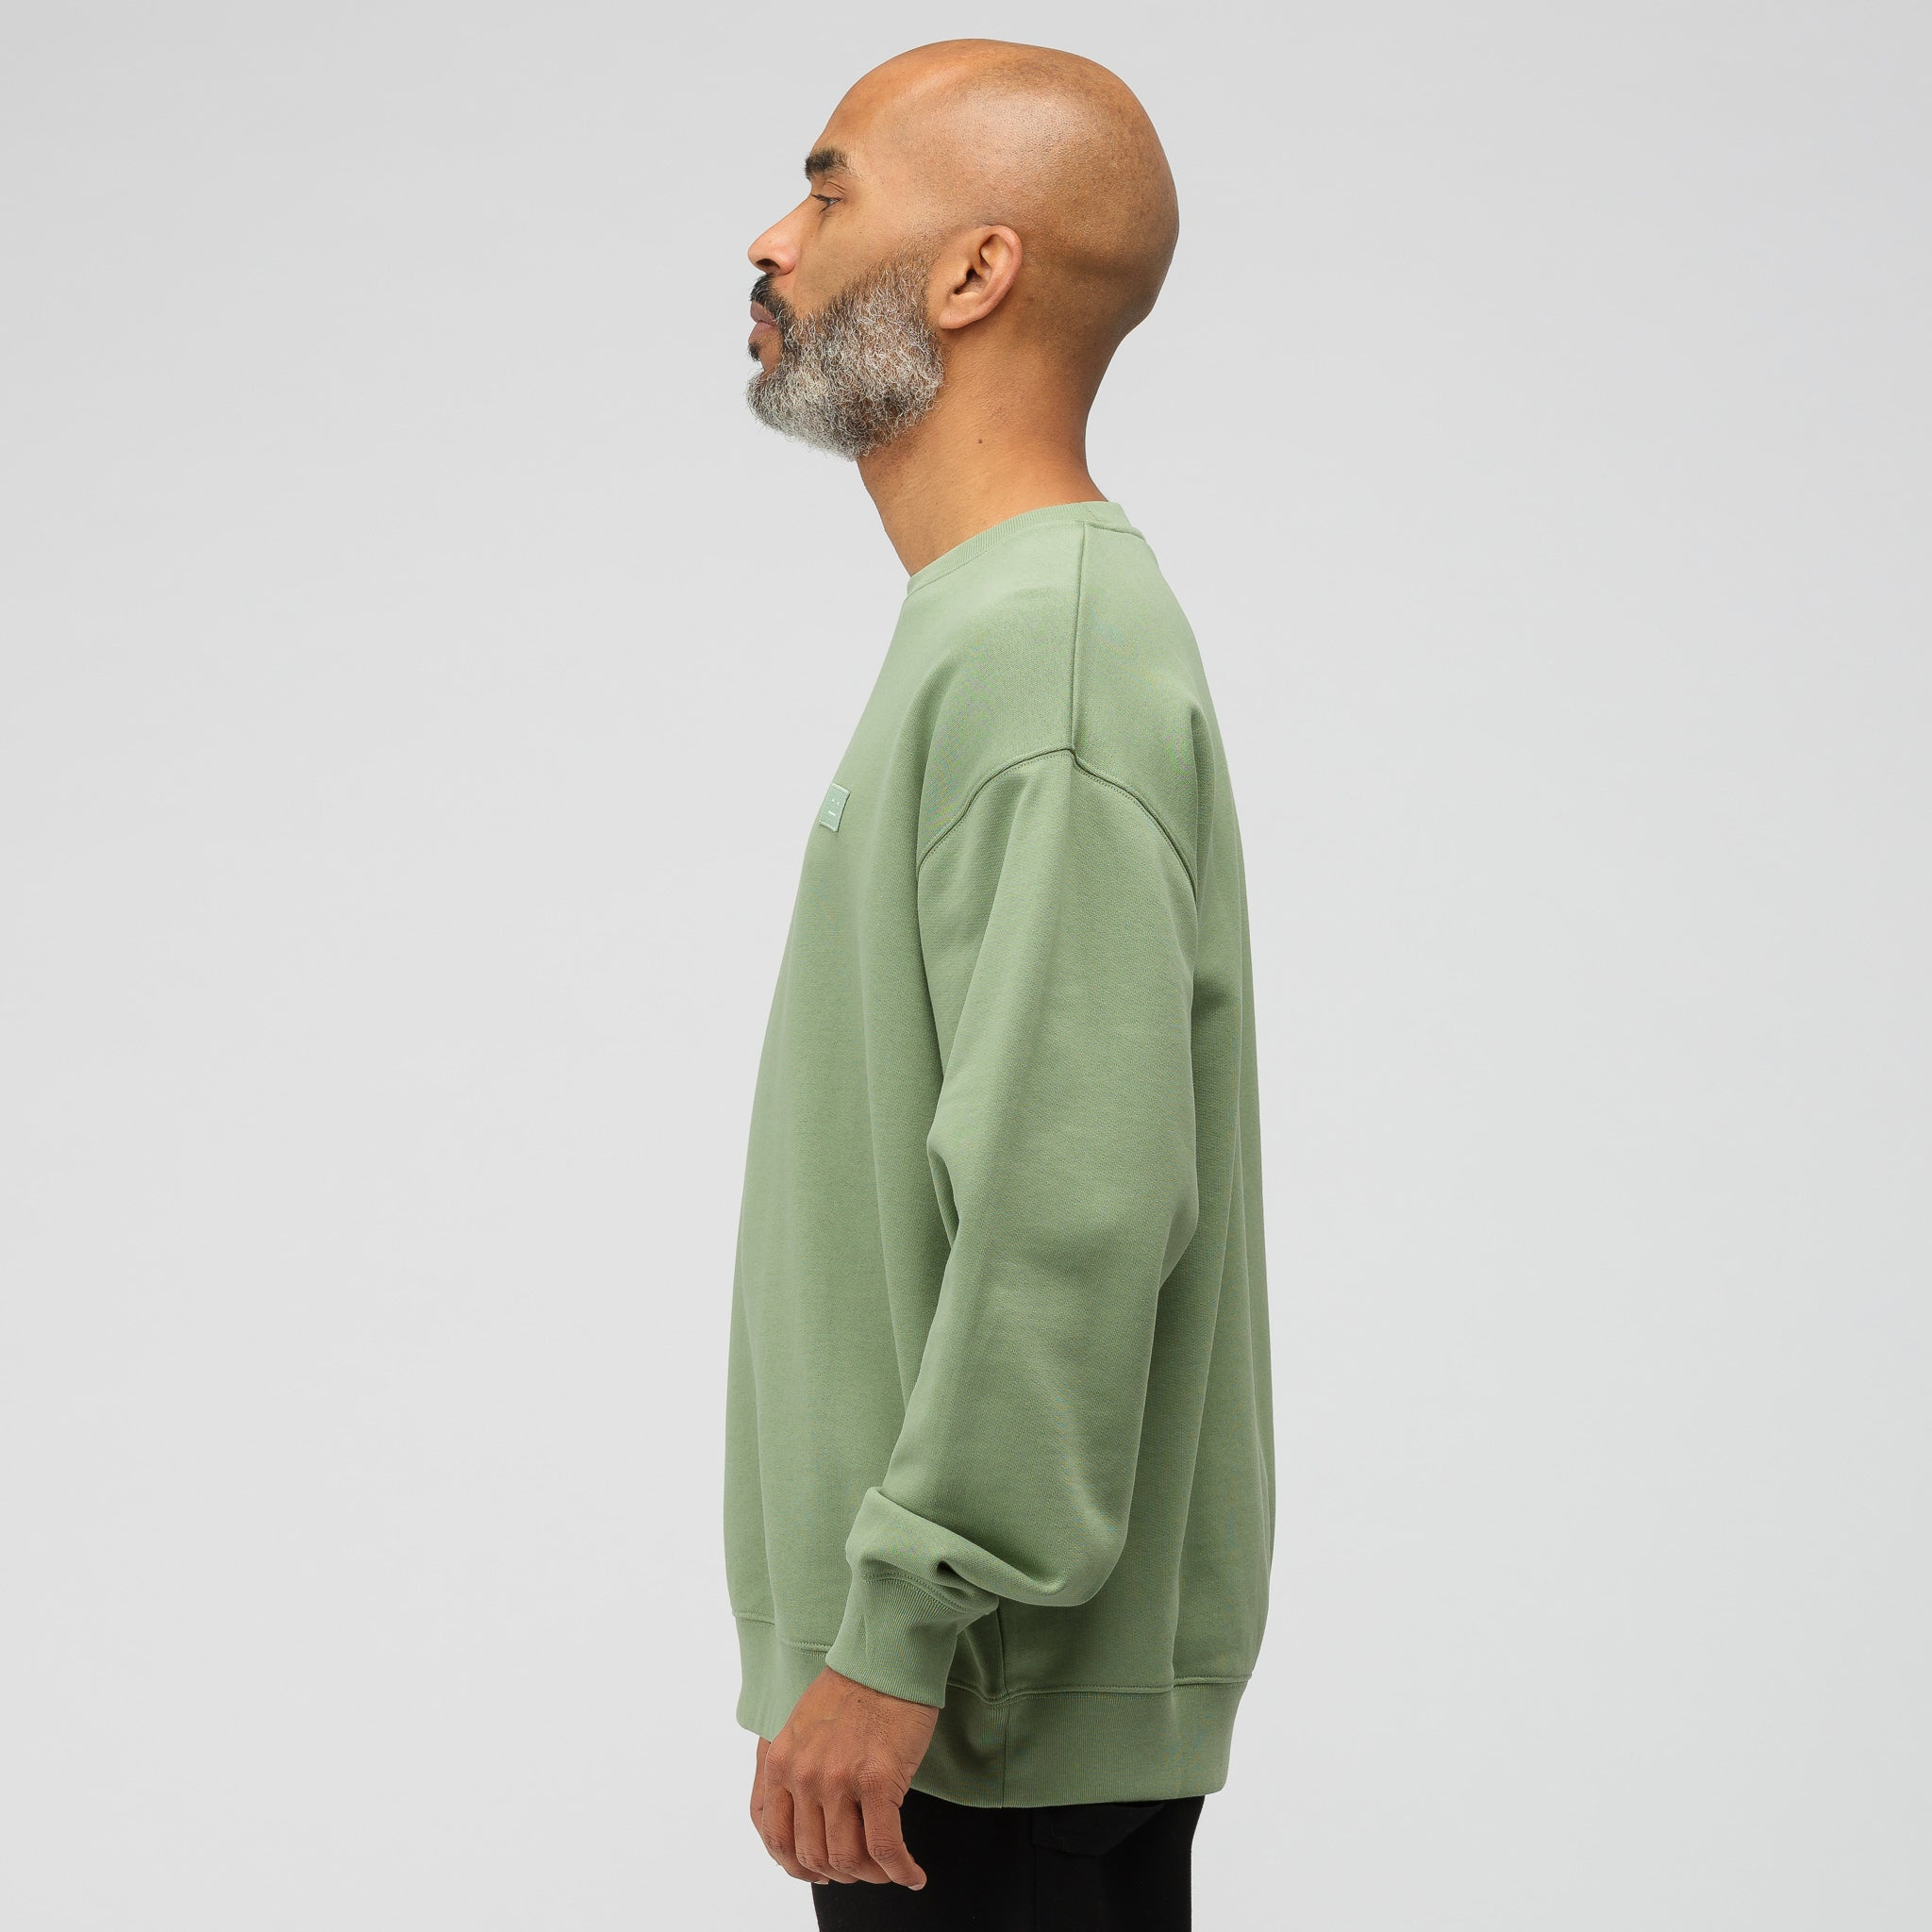 Crewneck Sweatshirt in Dusty Green